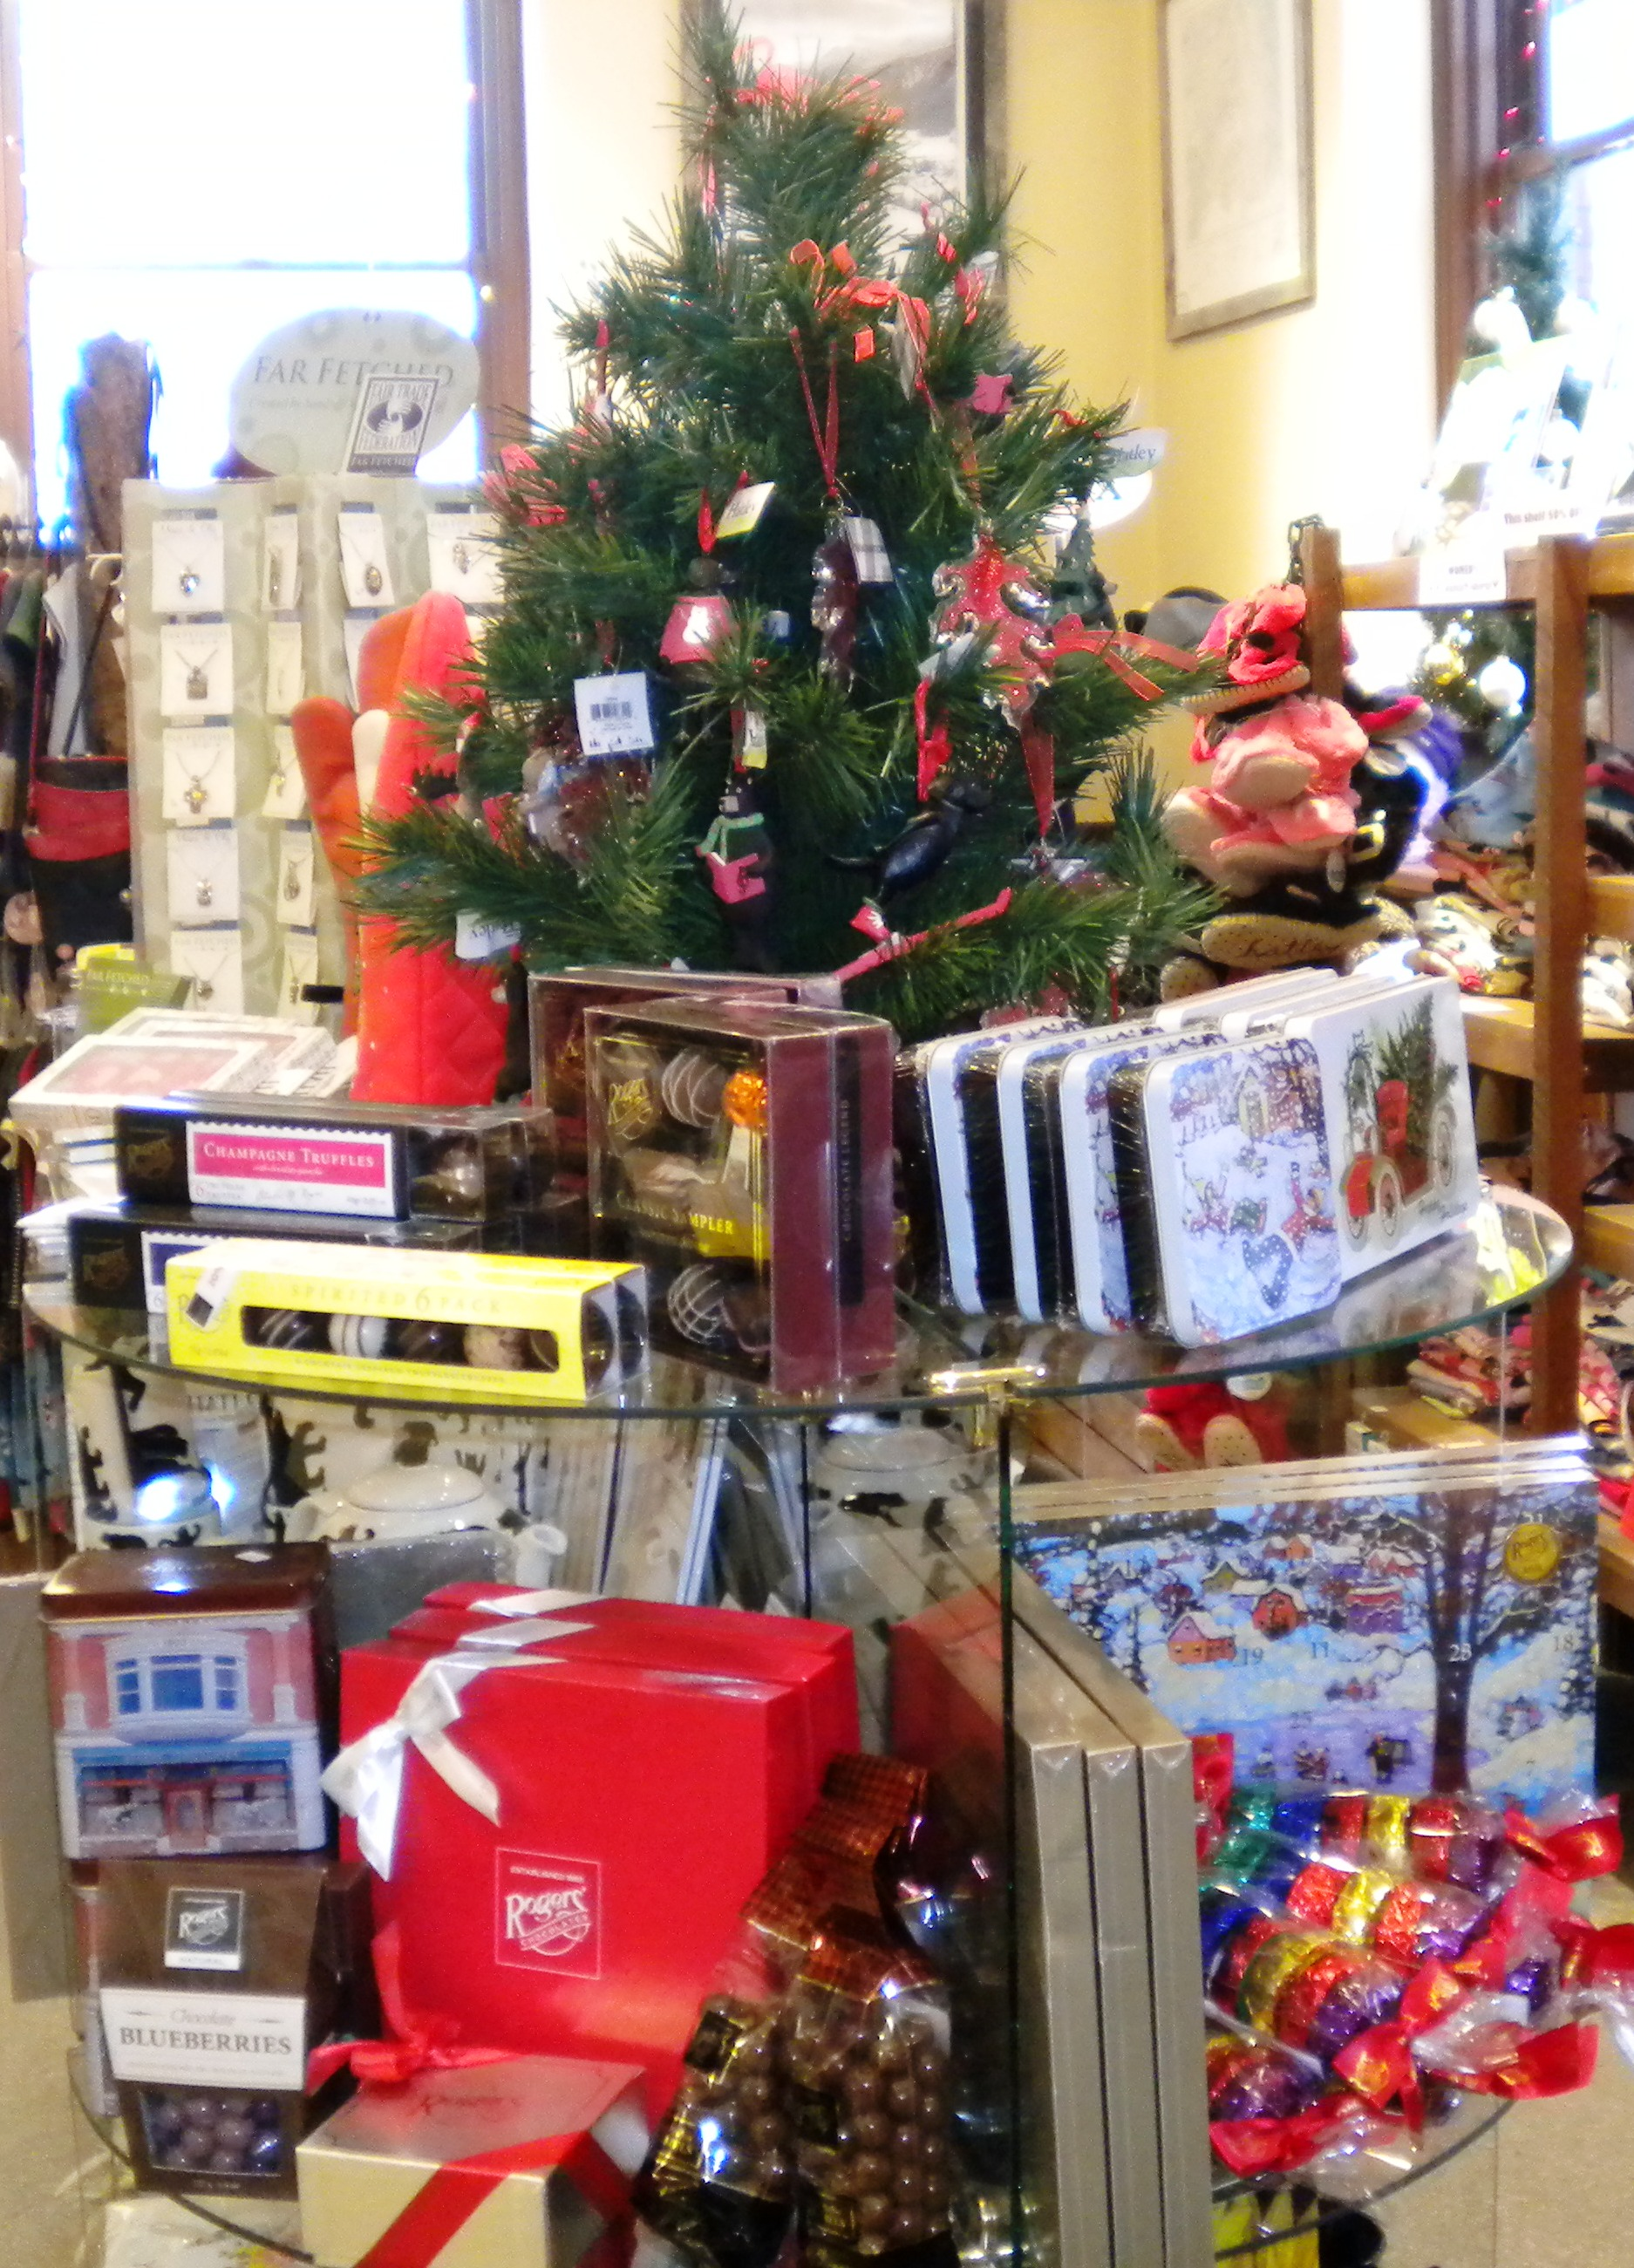 For the special people on your Christmas list, check out our delicious selection of Rogers Chocolates, from Victoria, B.C.